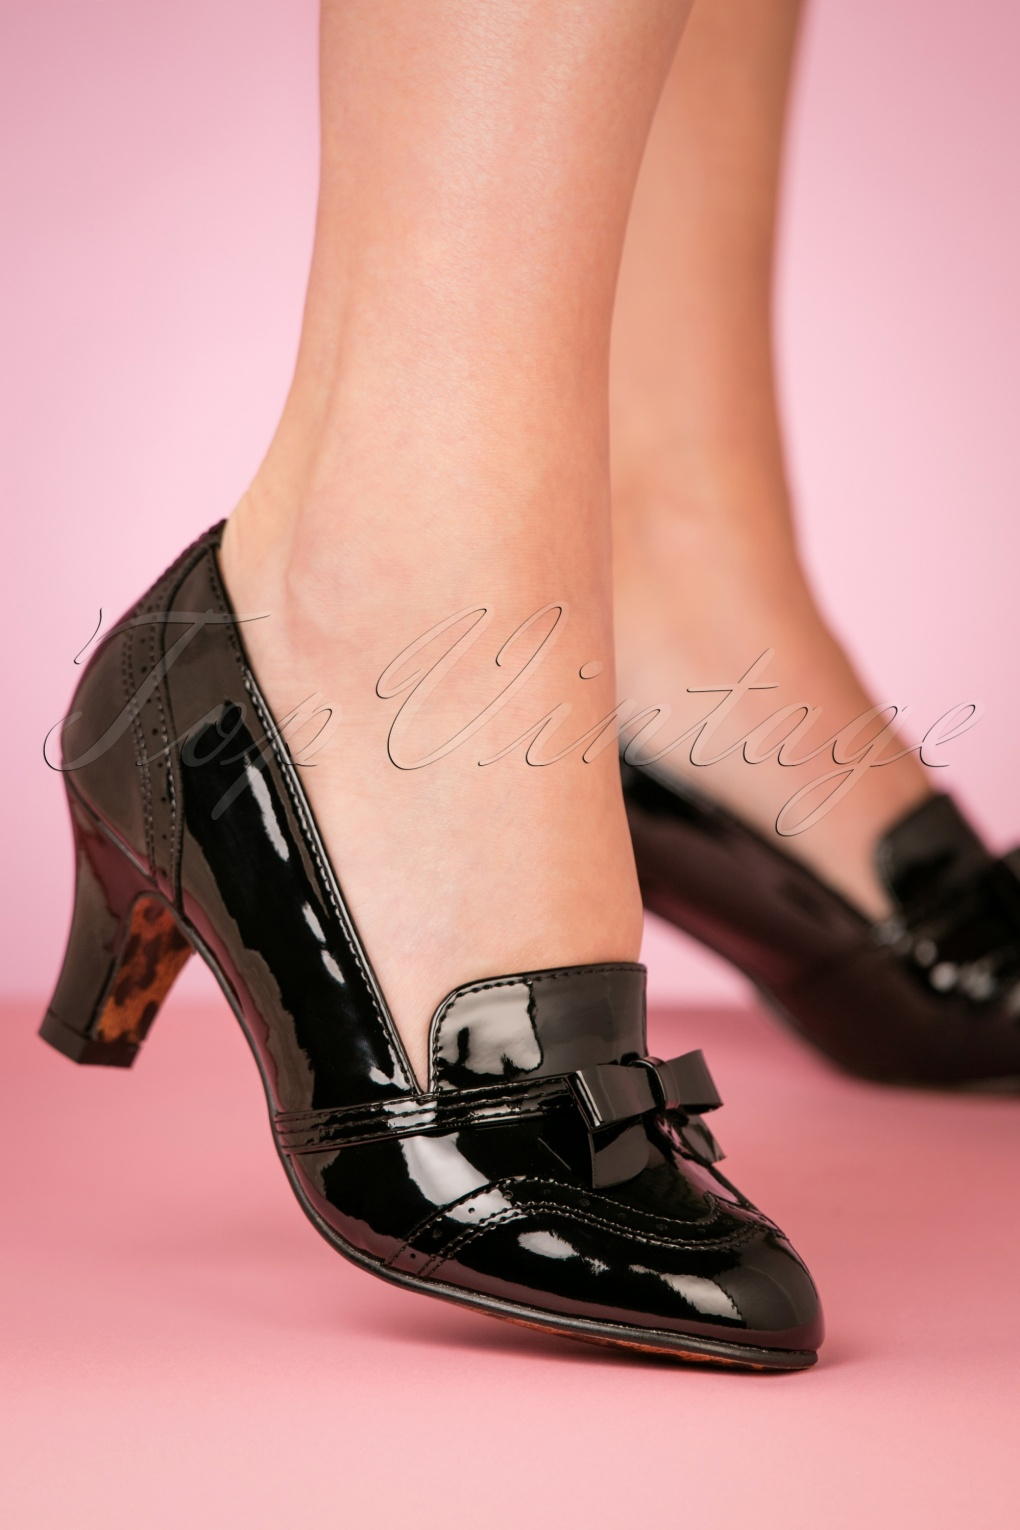 Authentic Natural 1950s Makeup History and Tutorial 50s Sadey Patent Pumps in Black £63.51 AT vintagedancer.com